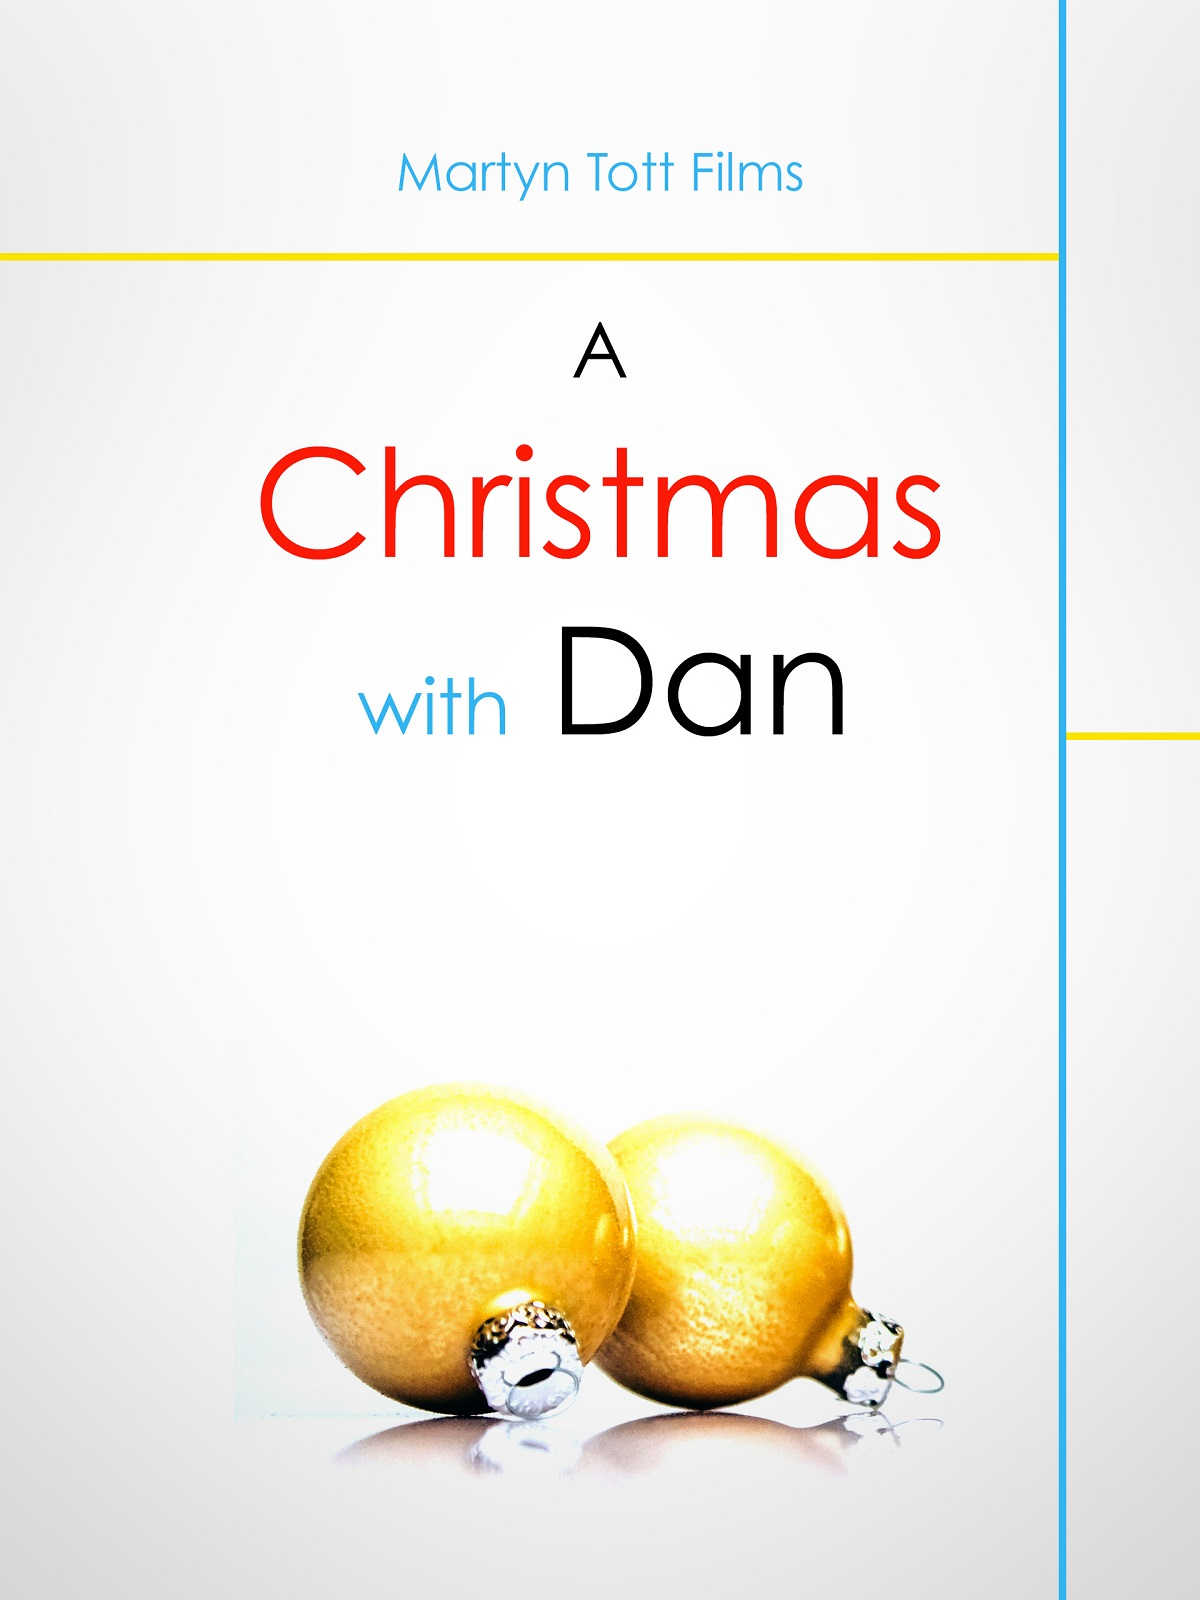 A CHRISTMAS WITH DAN FINAL ART APPROVED